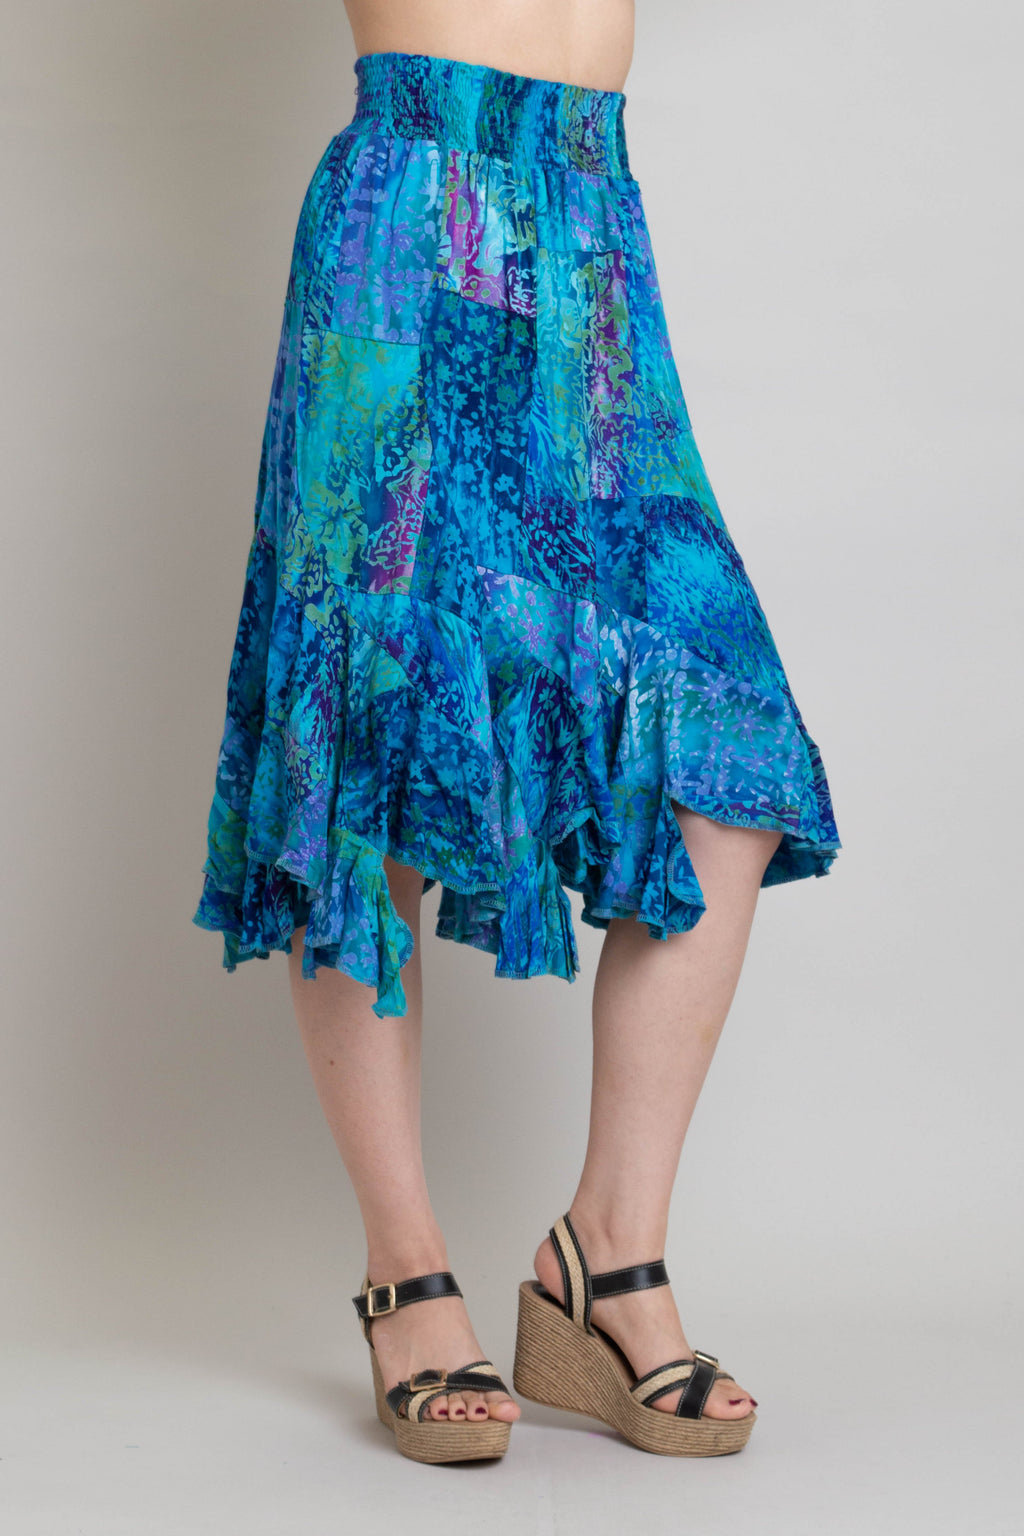 Patchwork Skirt, Ocean Meets Sky, Batik Art - Blue Sky Clothing Co